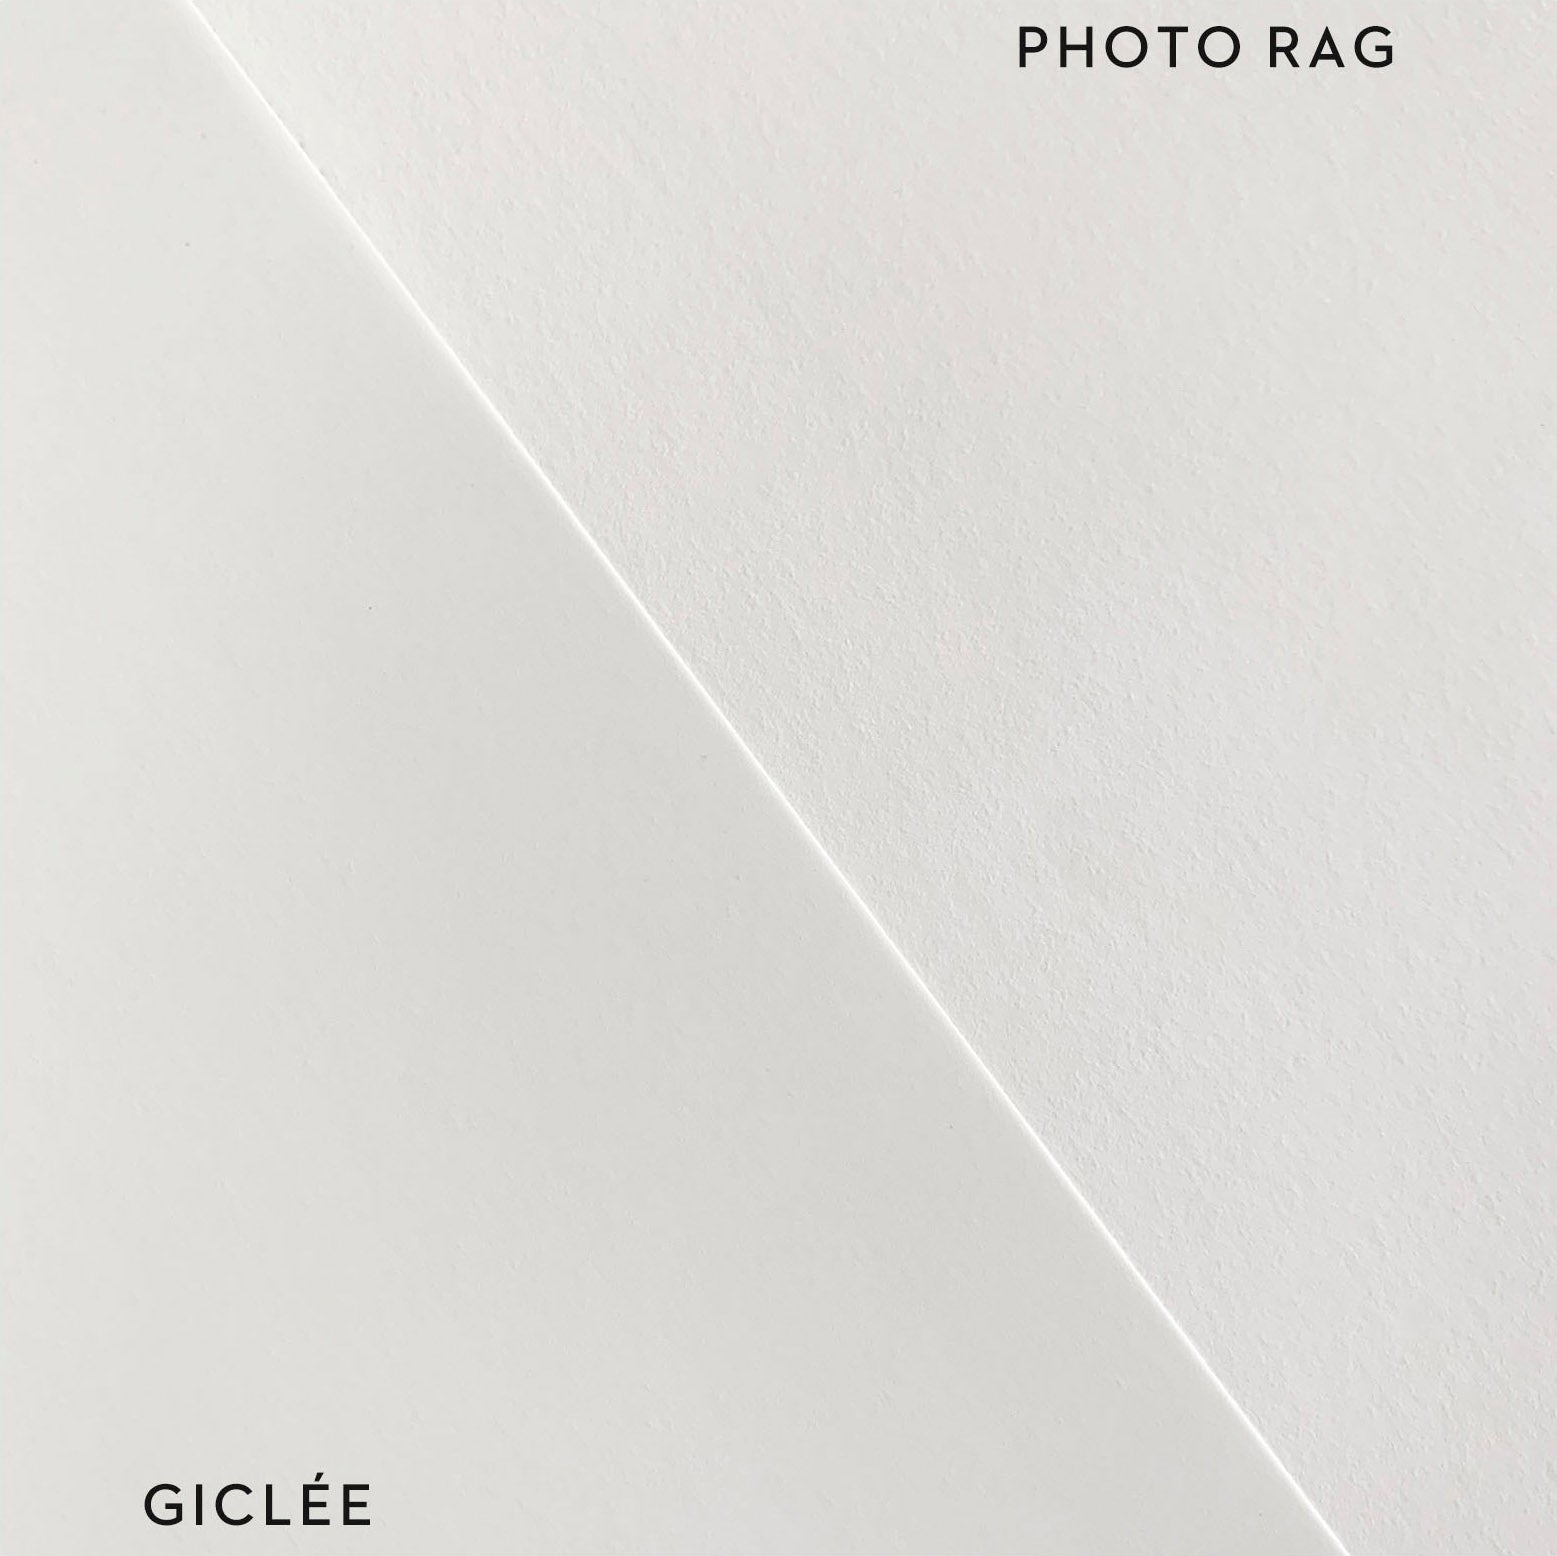 Photo Rag and Giclee Comparison